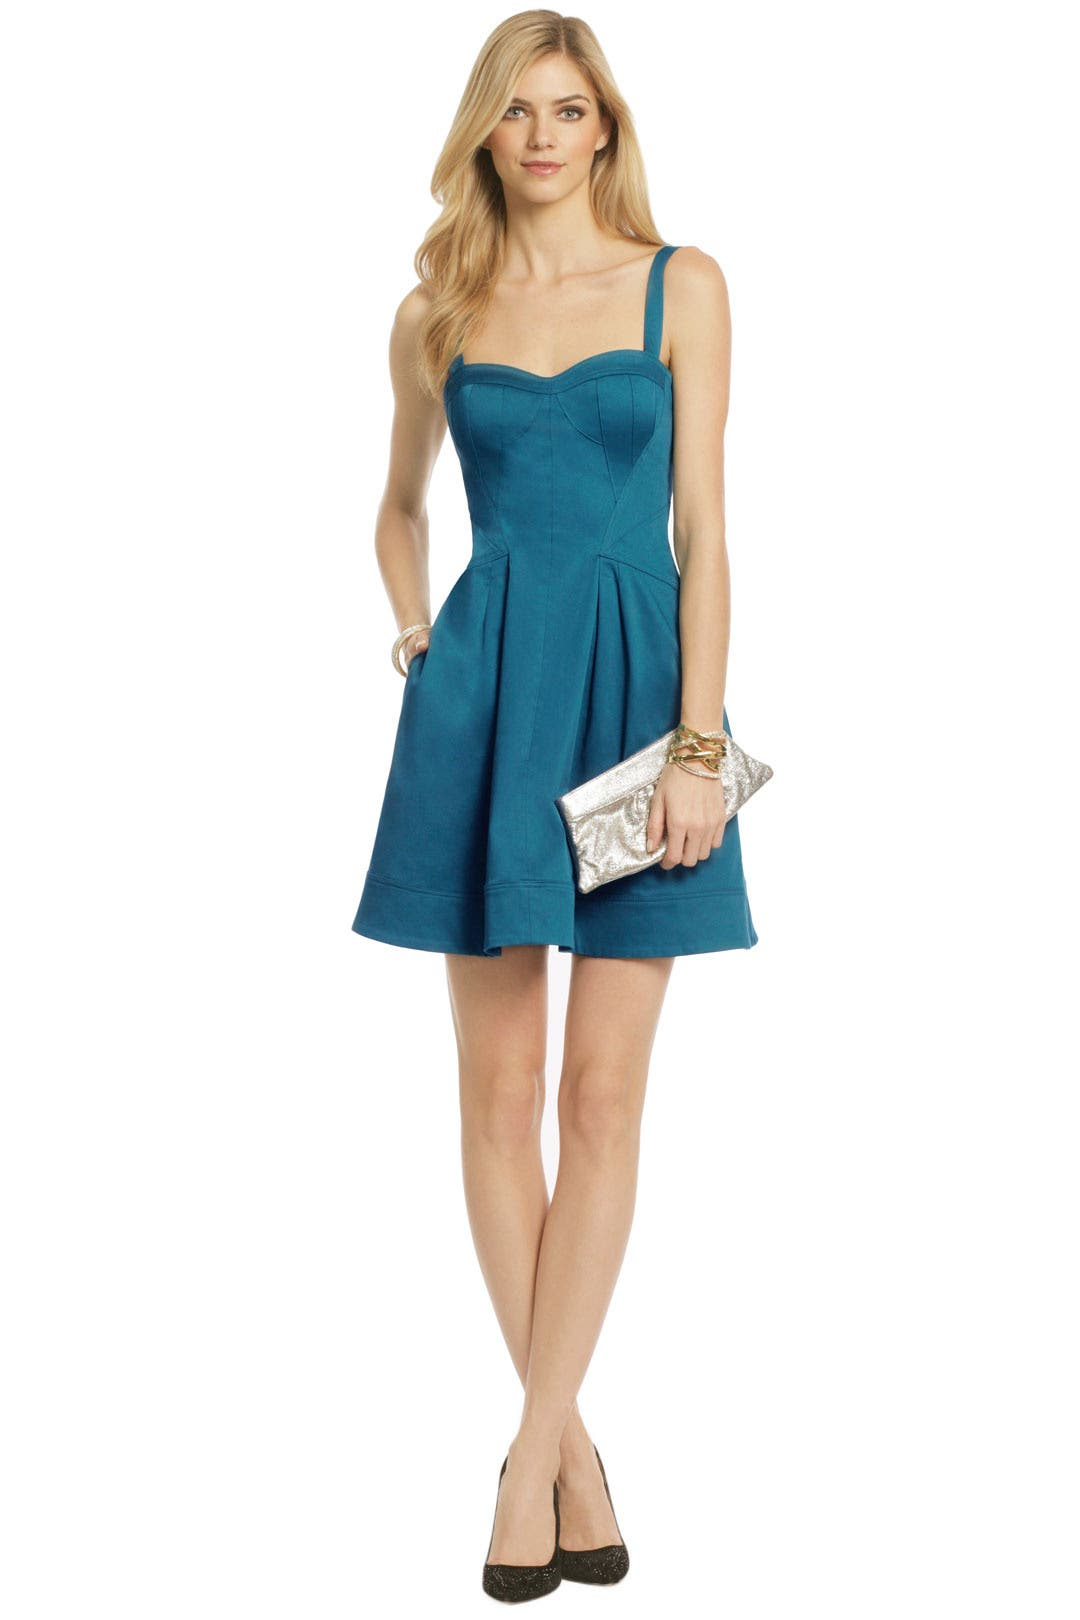 No Turning Back Dress by Z Spoke Zac Posen for $129 | Rent the Runway